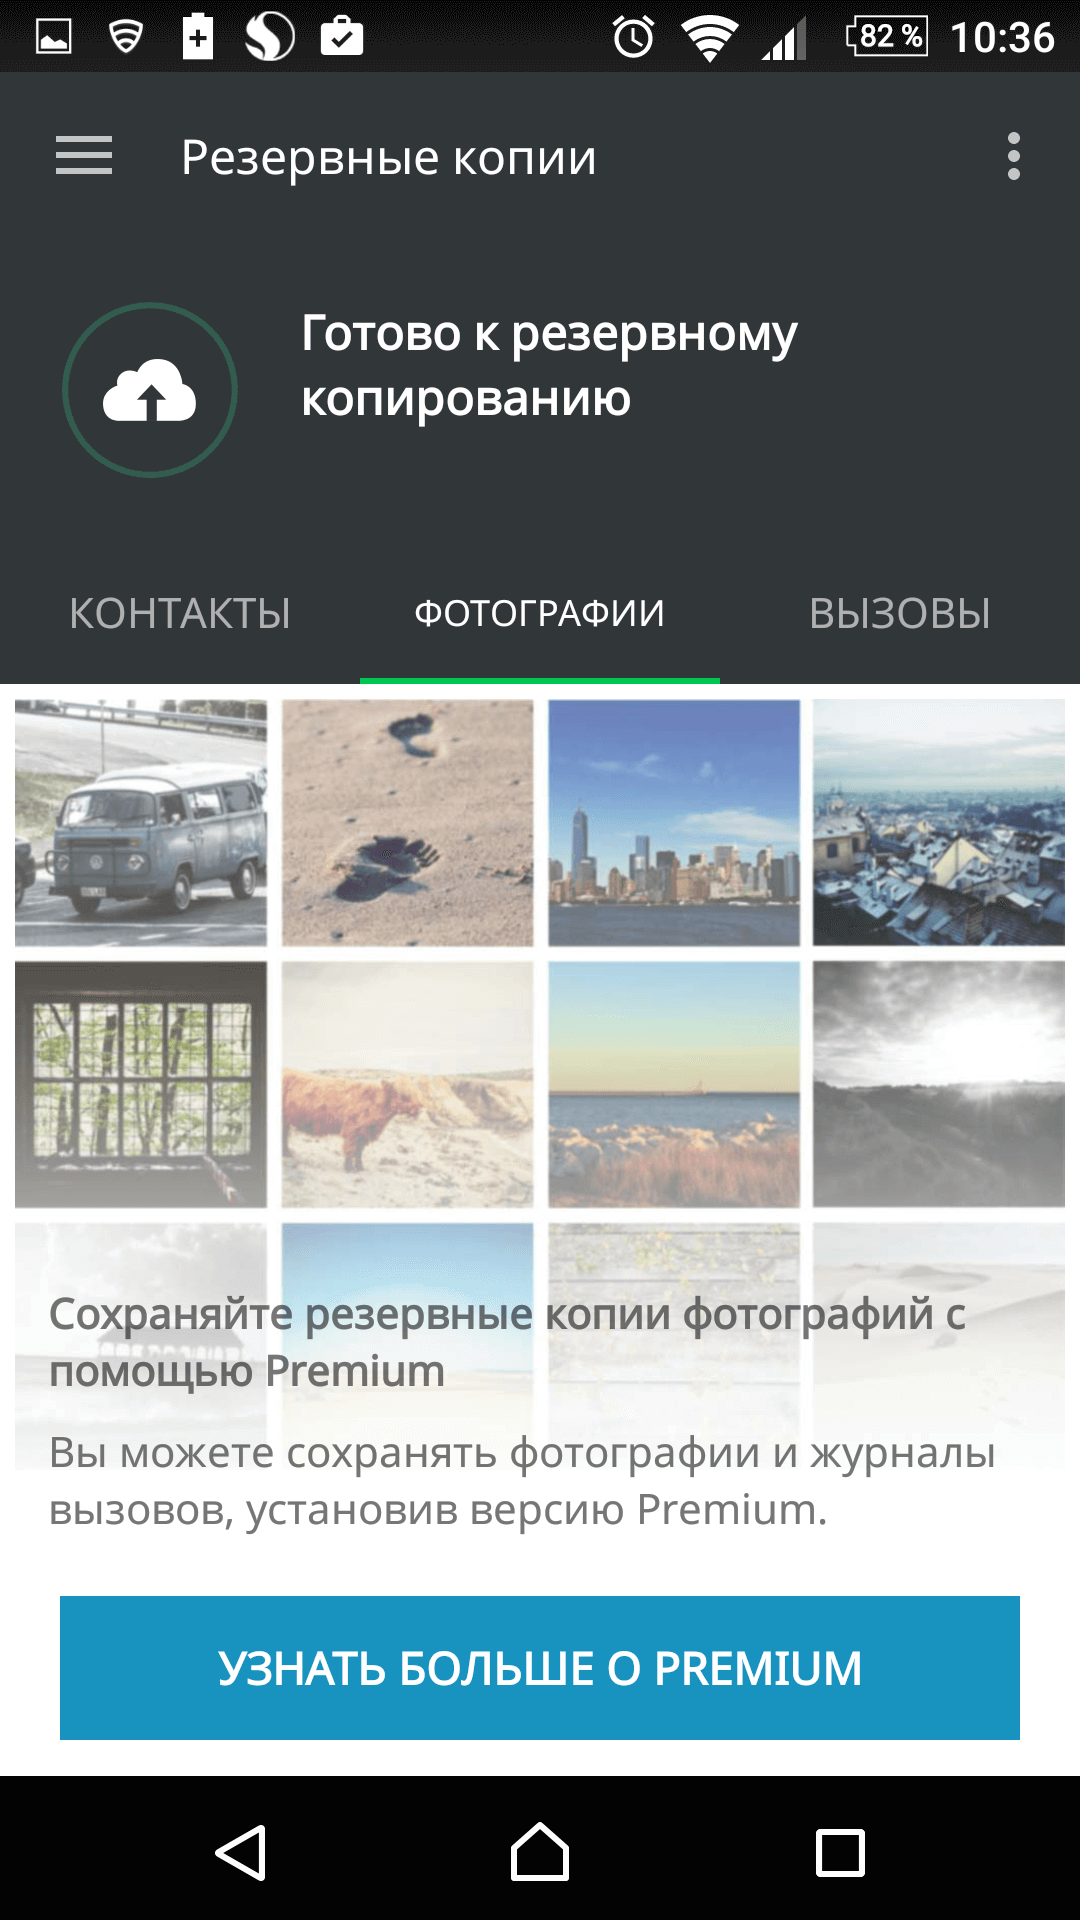 lookout mobile security для android скриншоты